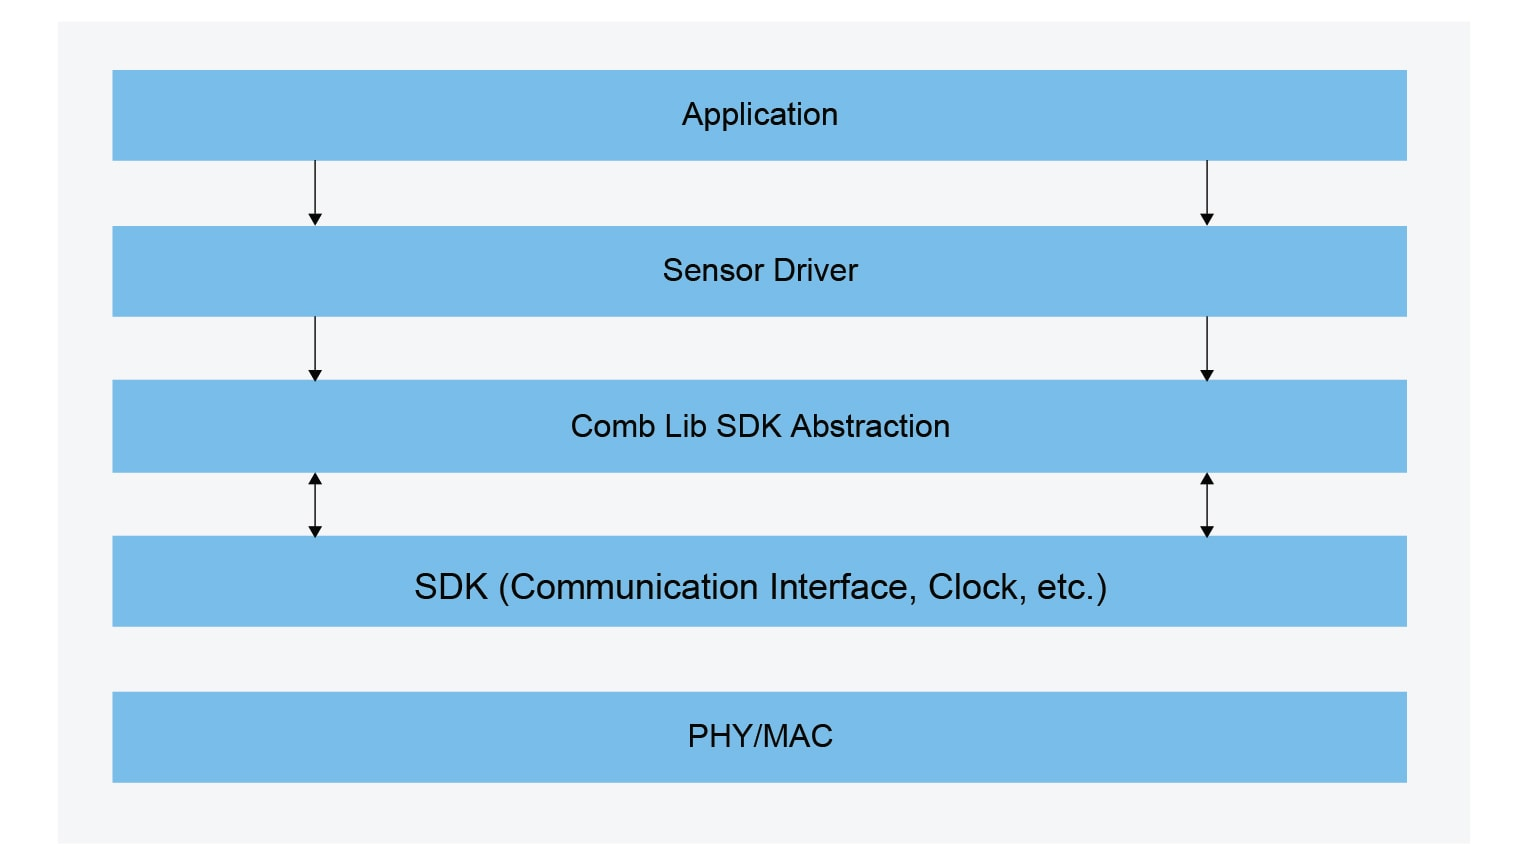 Sensor Driver - Architecture Block Diagram